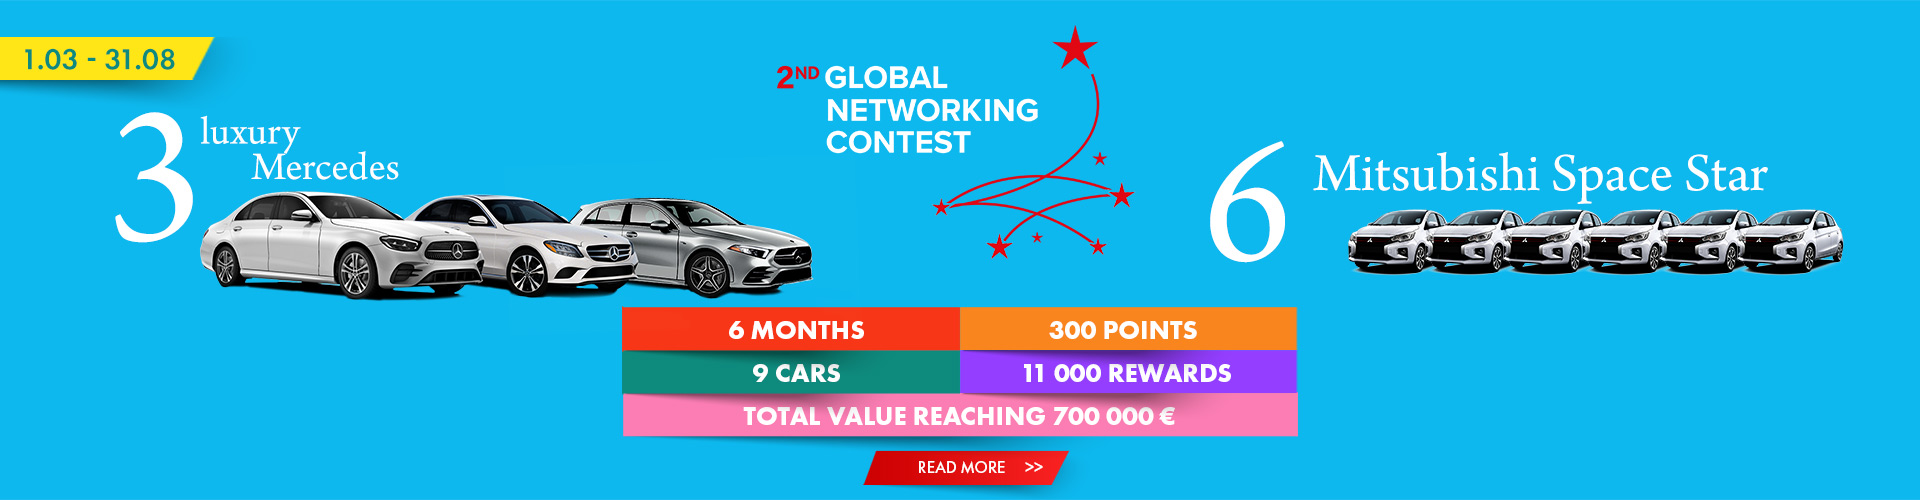 2nd Global Networking Contest-flyer